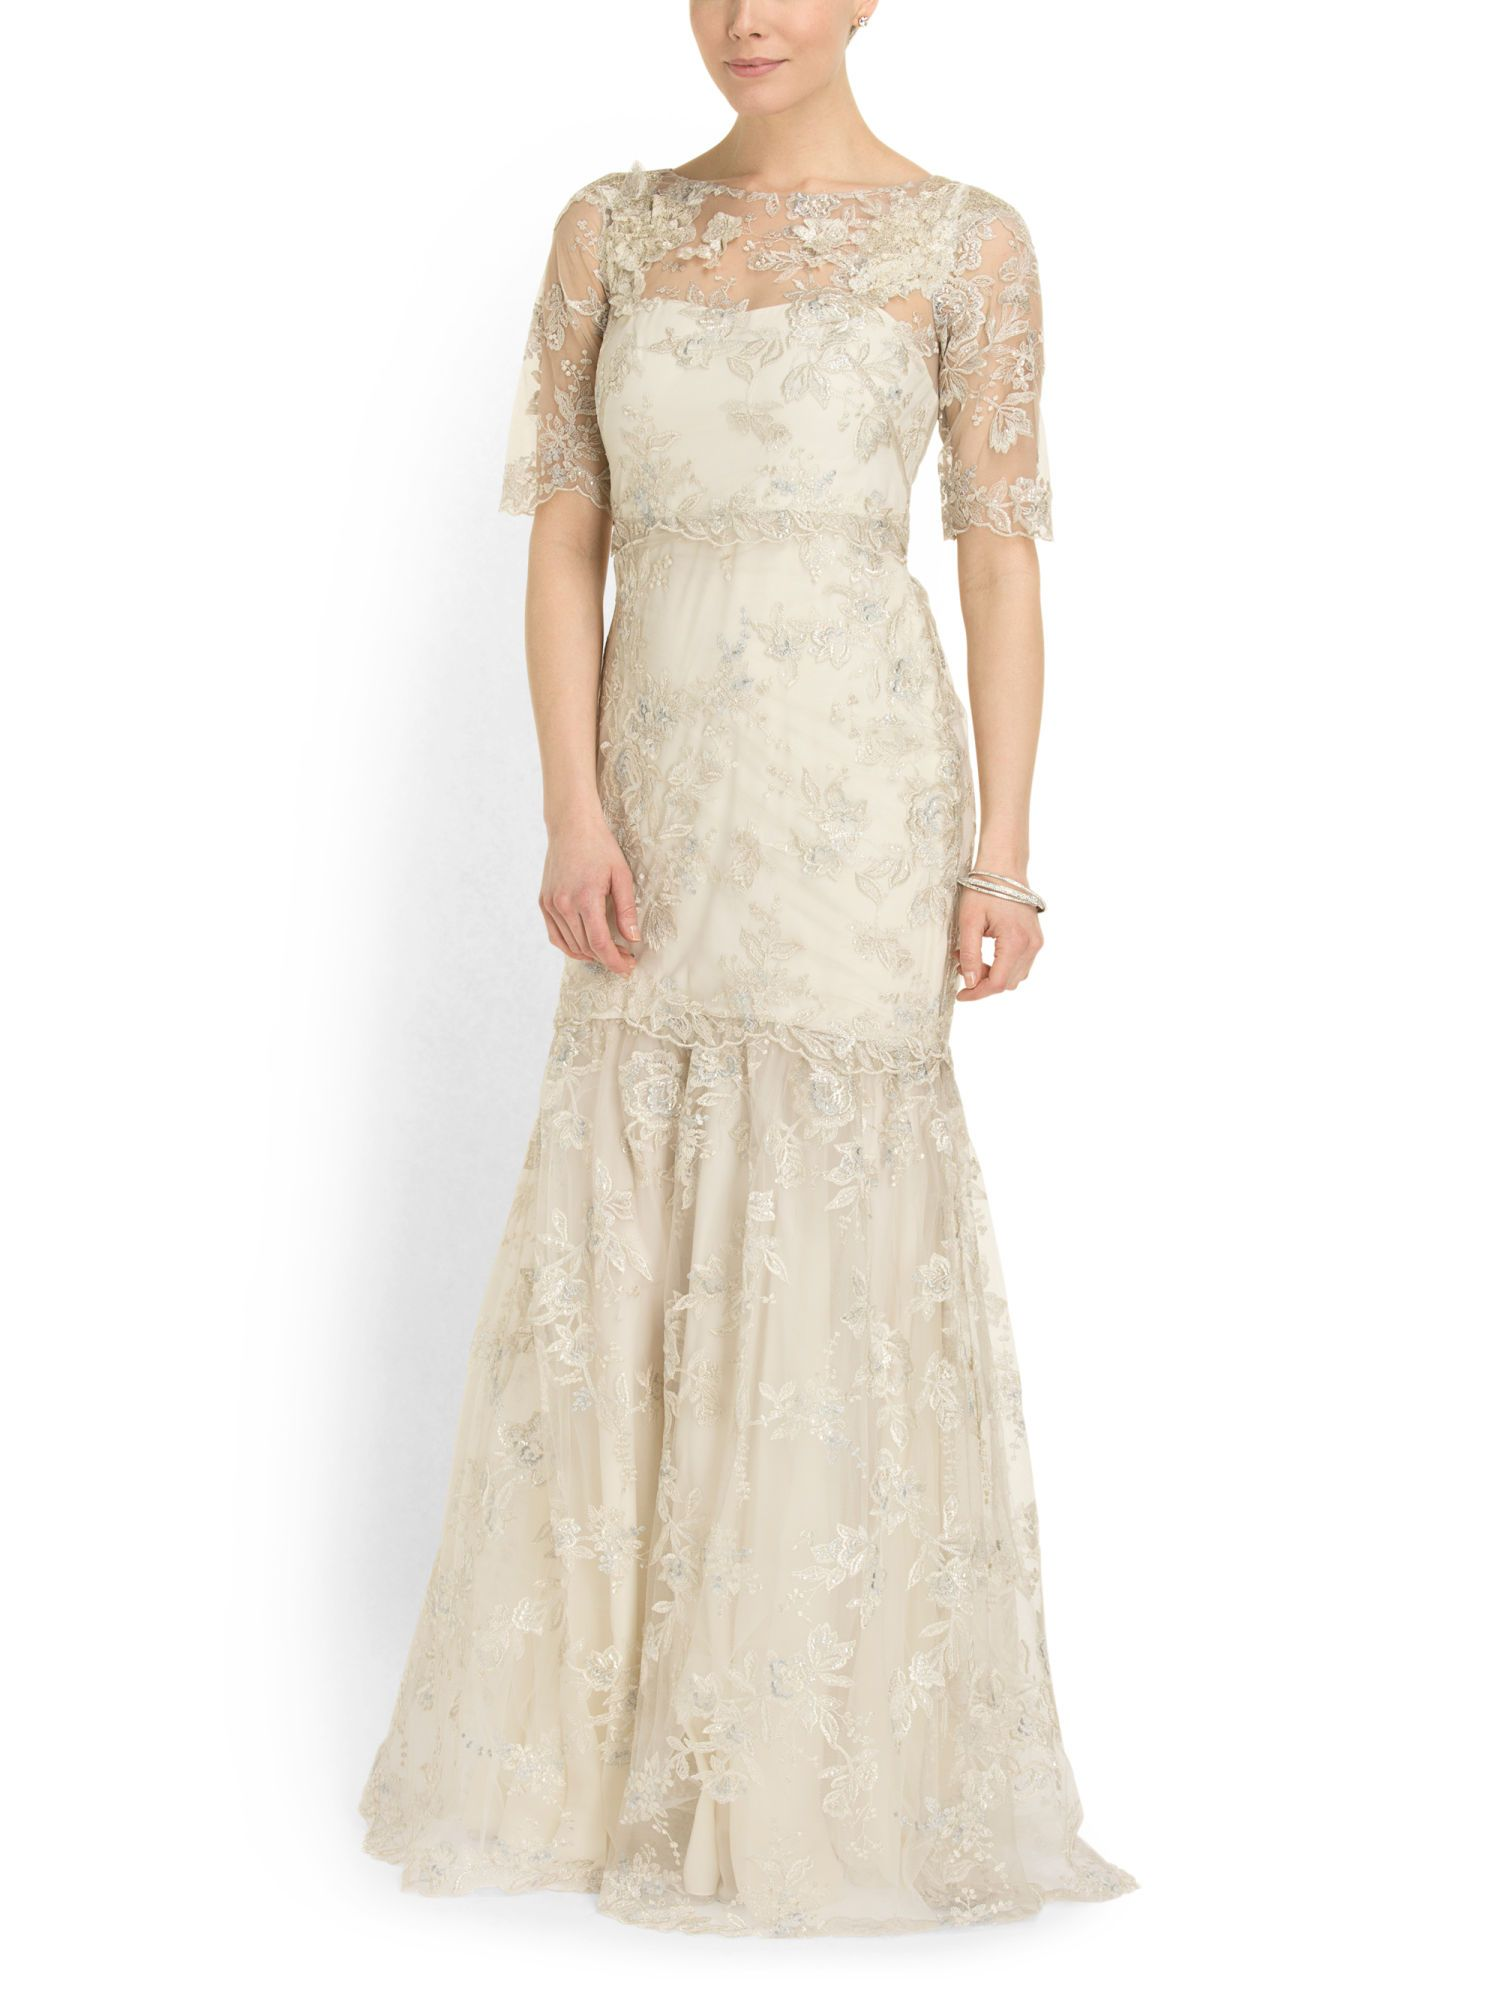 high resolution image | Gowns | Pinterest | Gowns